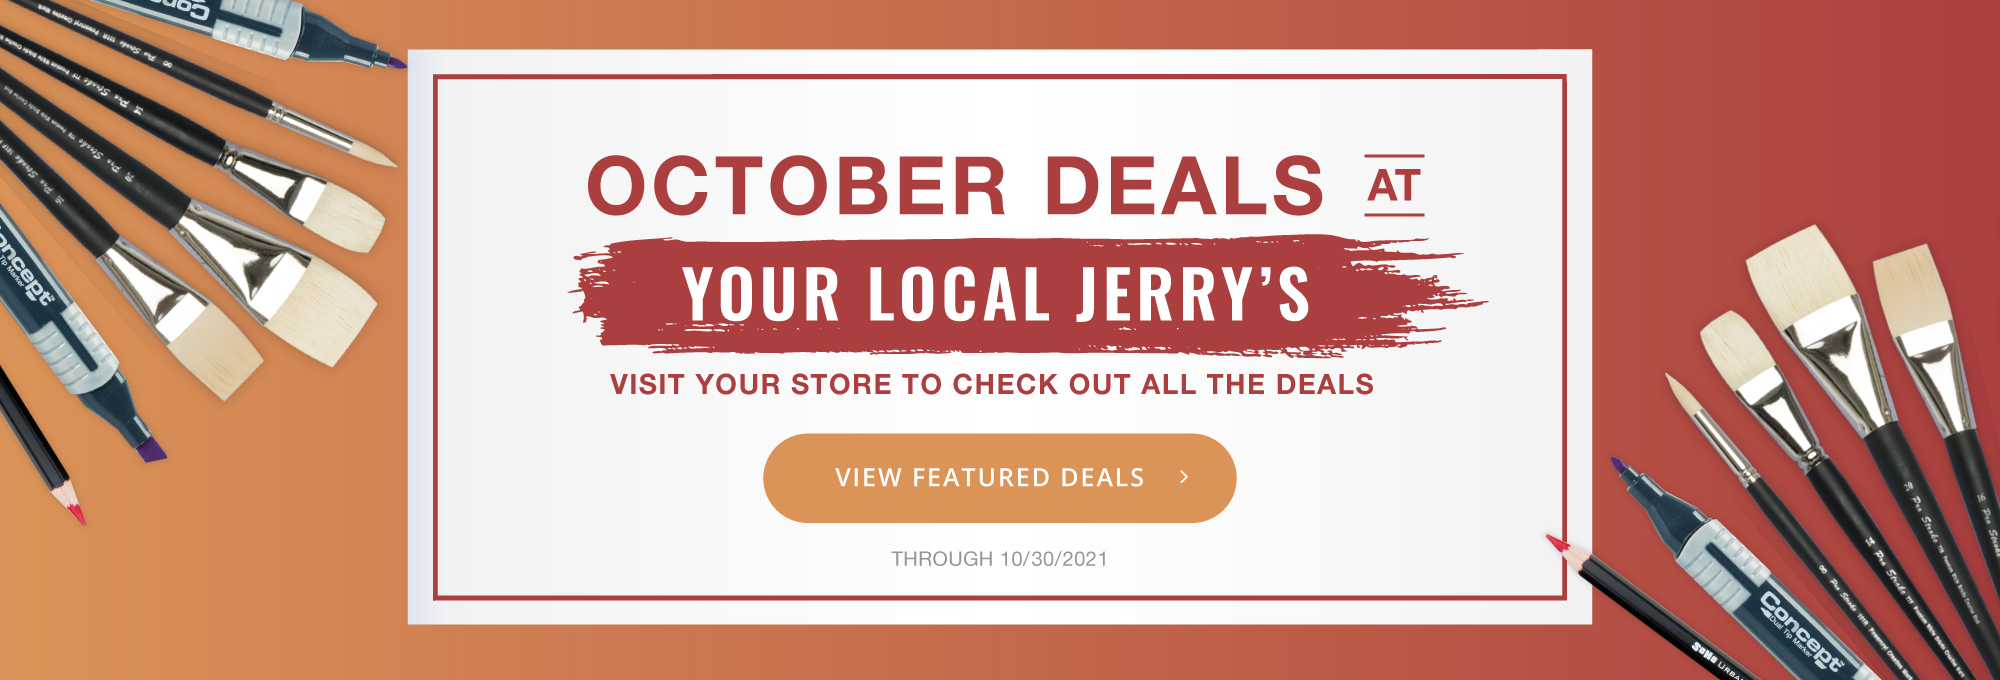 Jerry's Artarama Retail Stores - Your Local Art Supply Store